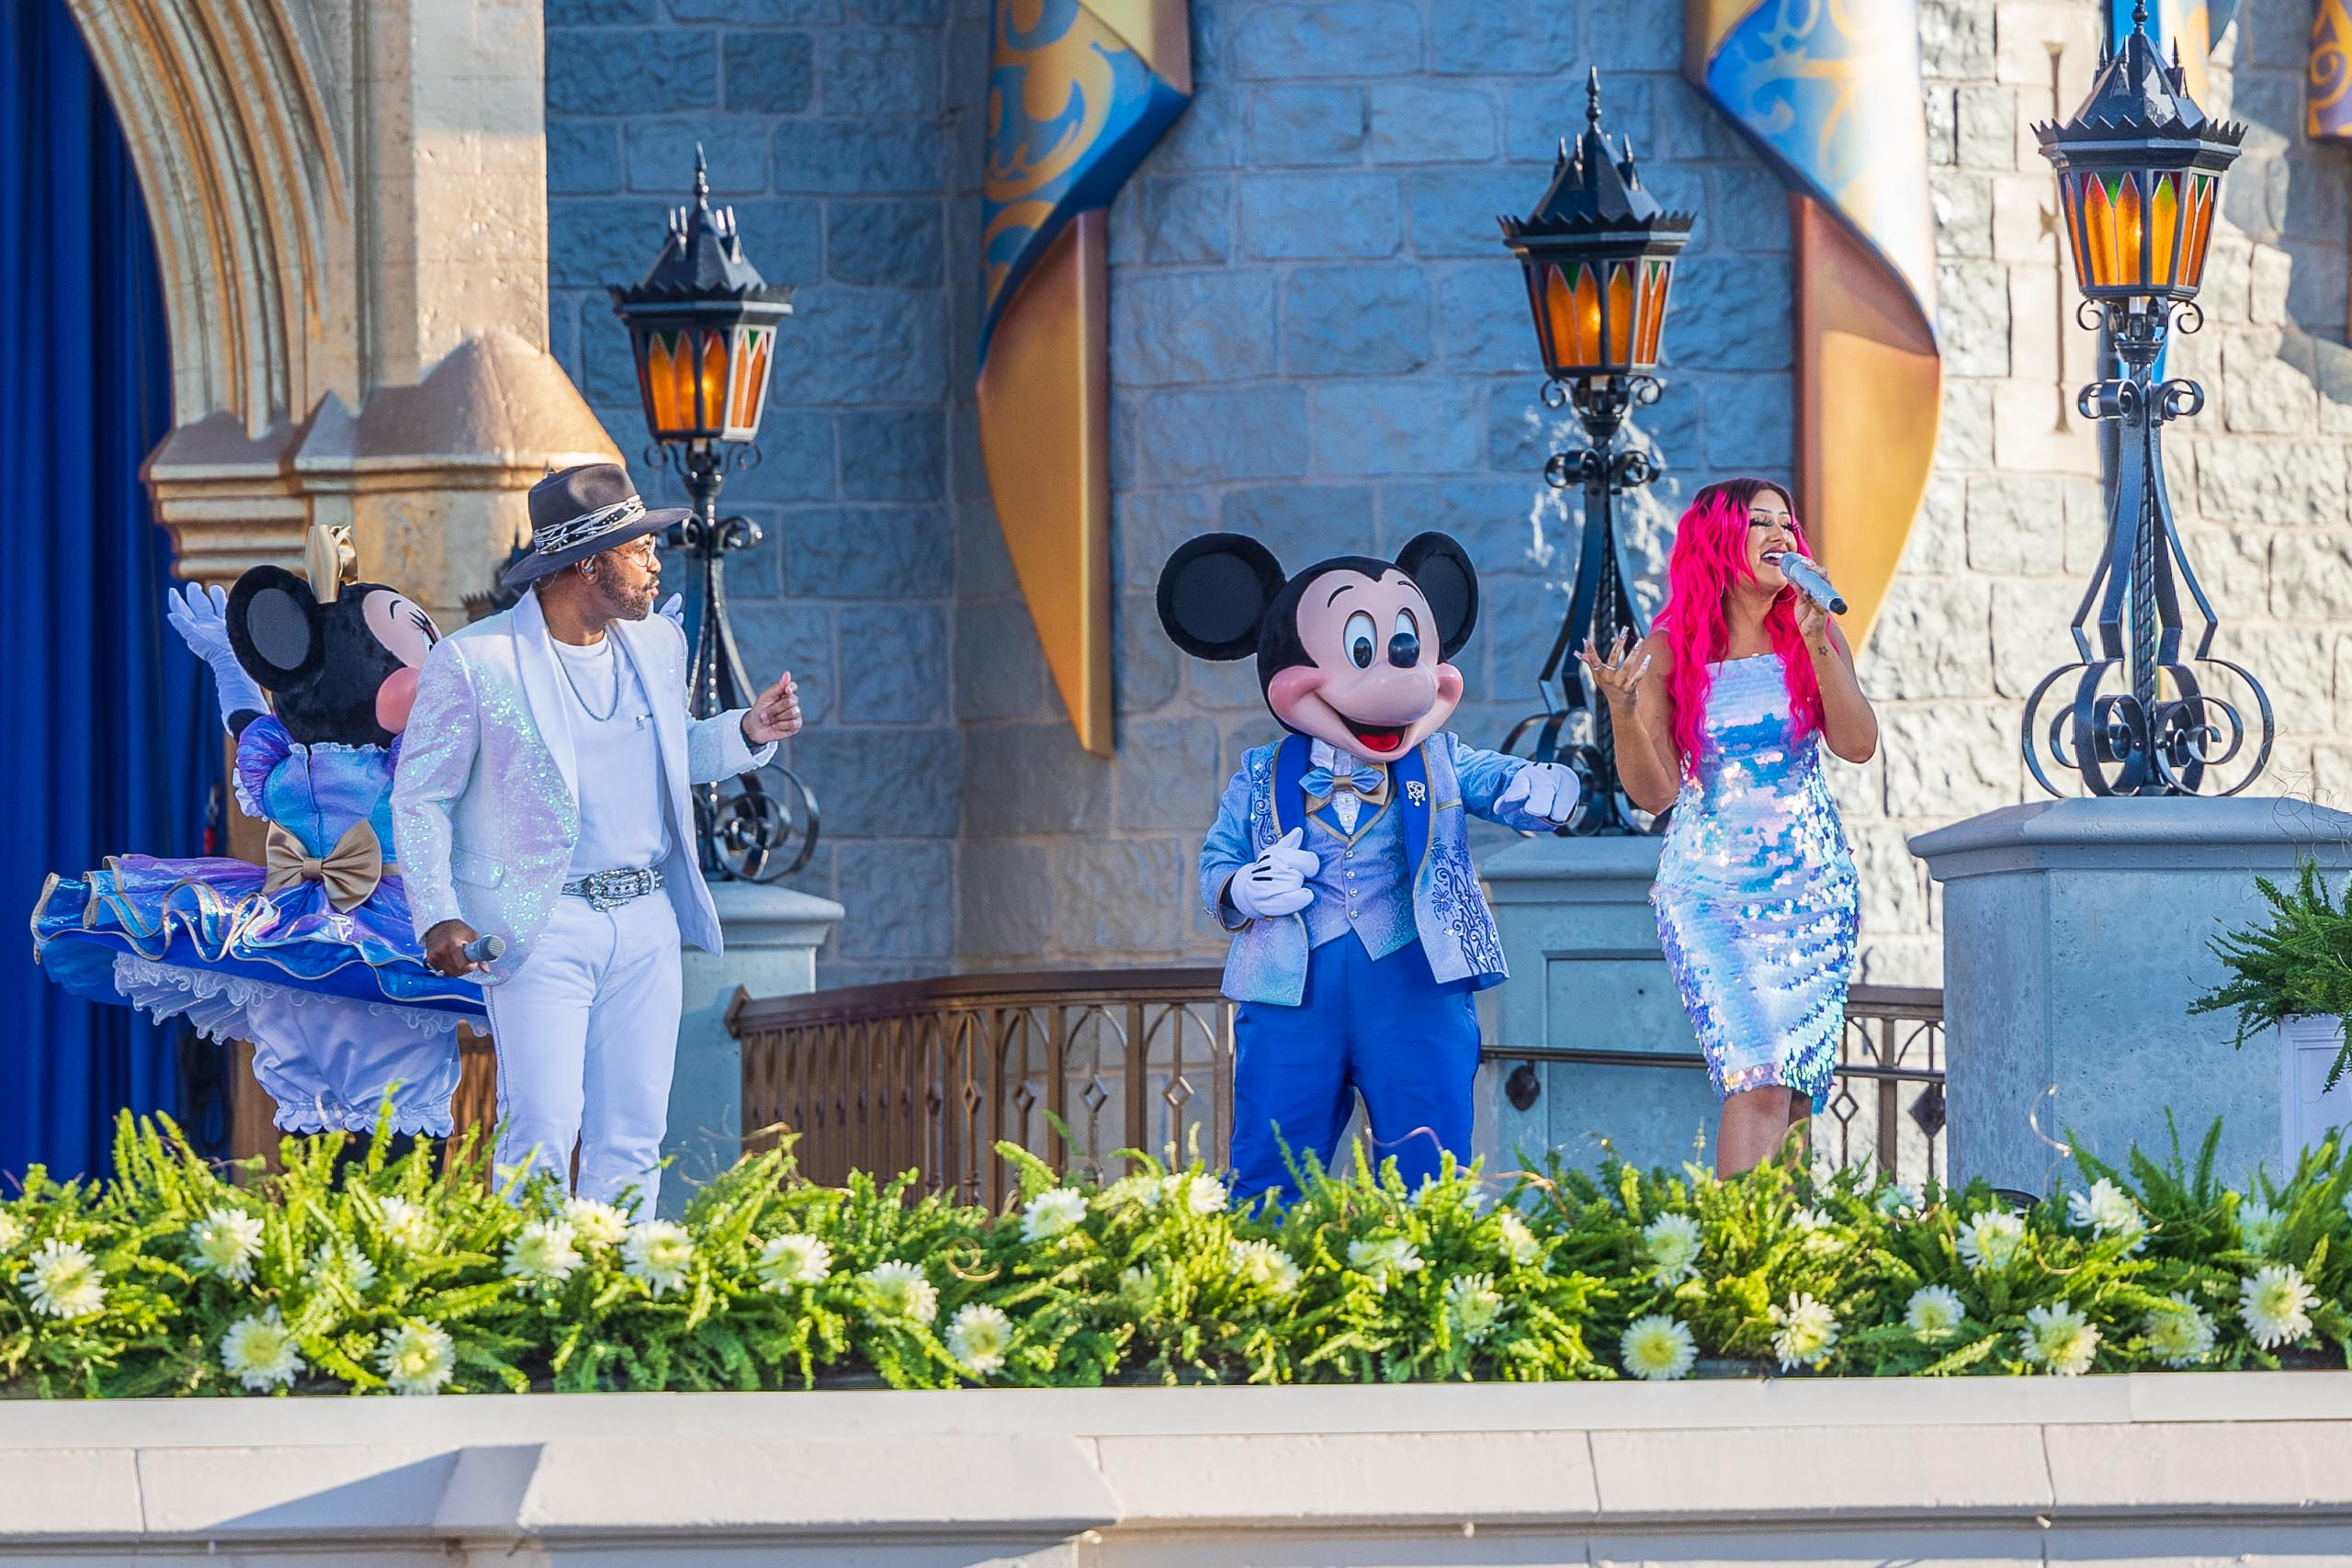 Philip Lawrence and Kayla Alvarez perform ''You are the Magic' at Cinderella Castle today as part of promotional shoot for Walt Disney World's 50th